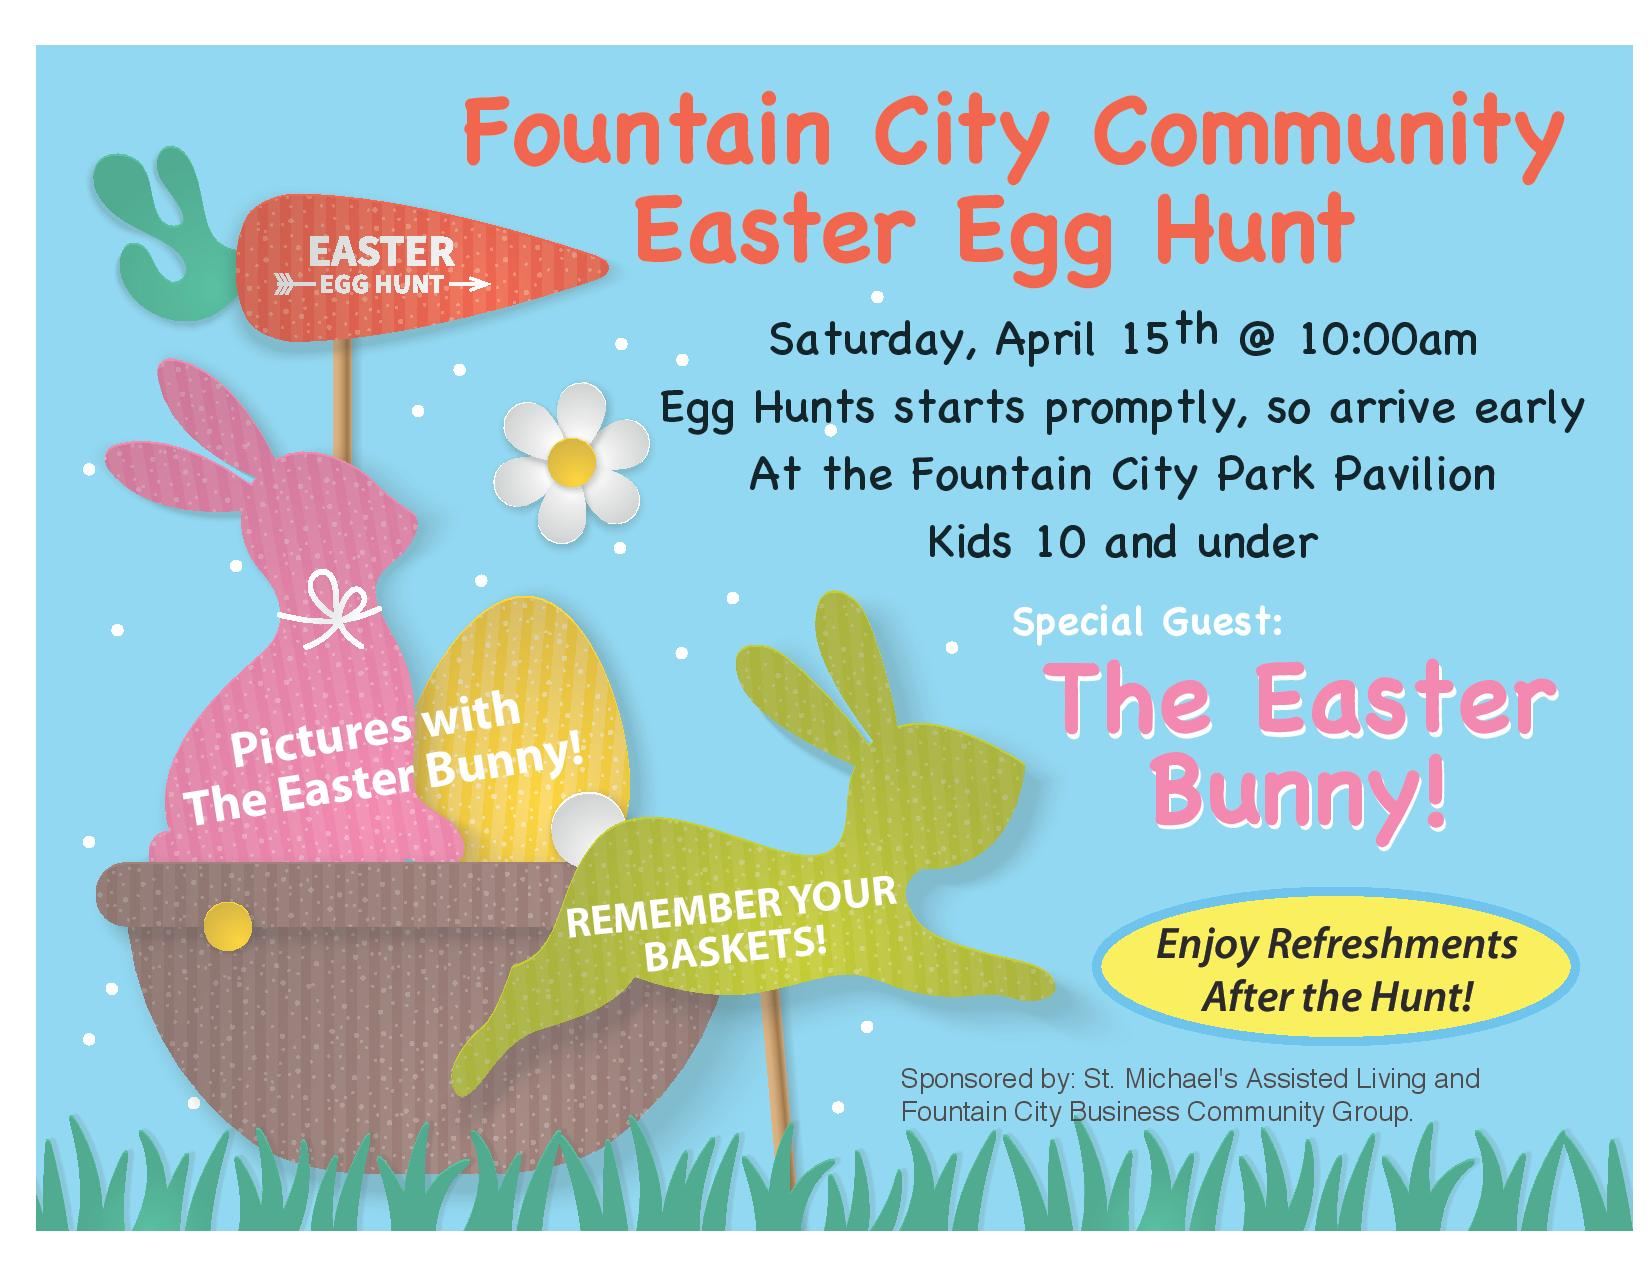 Fountain City Community Easter Egg Hunt @ Fountain City Community Park